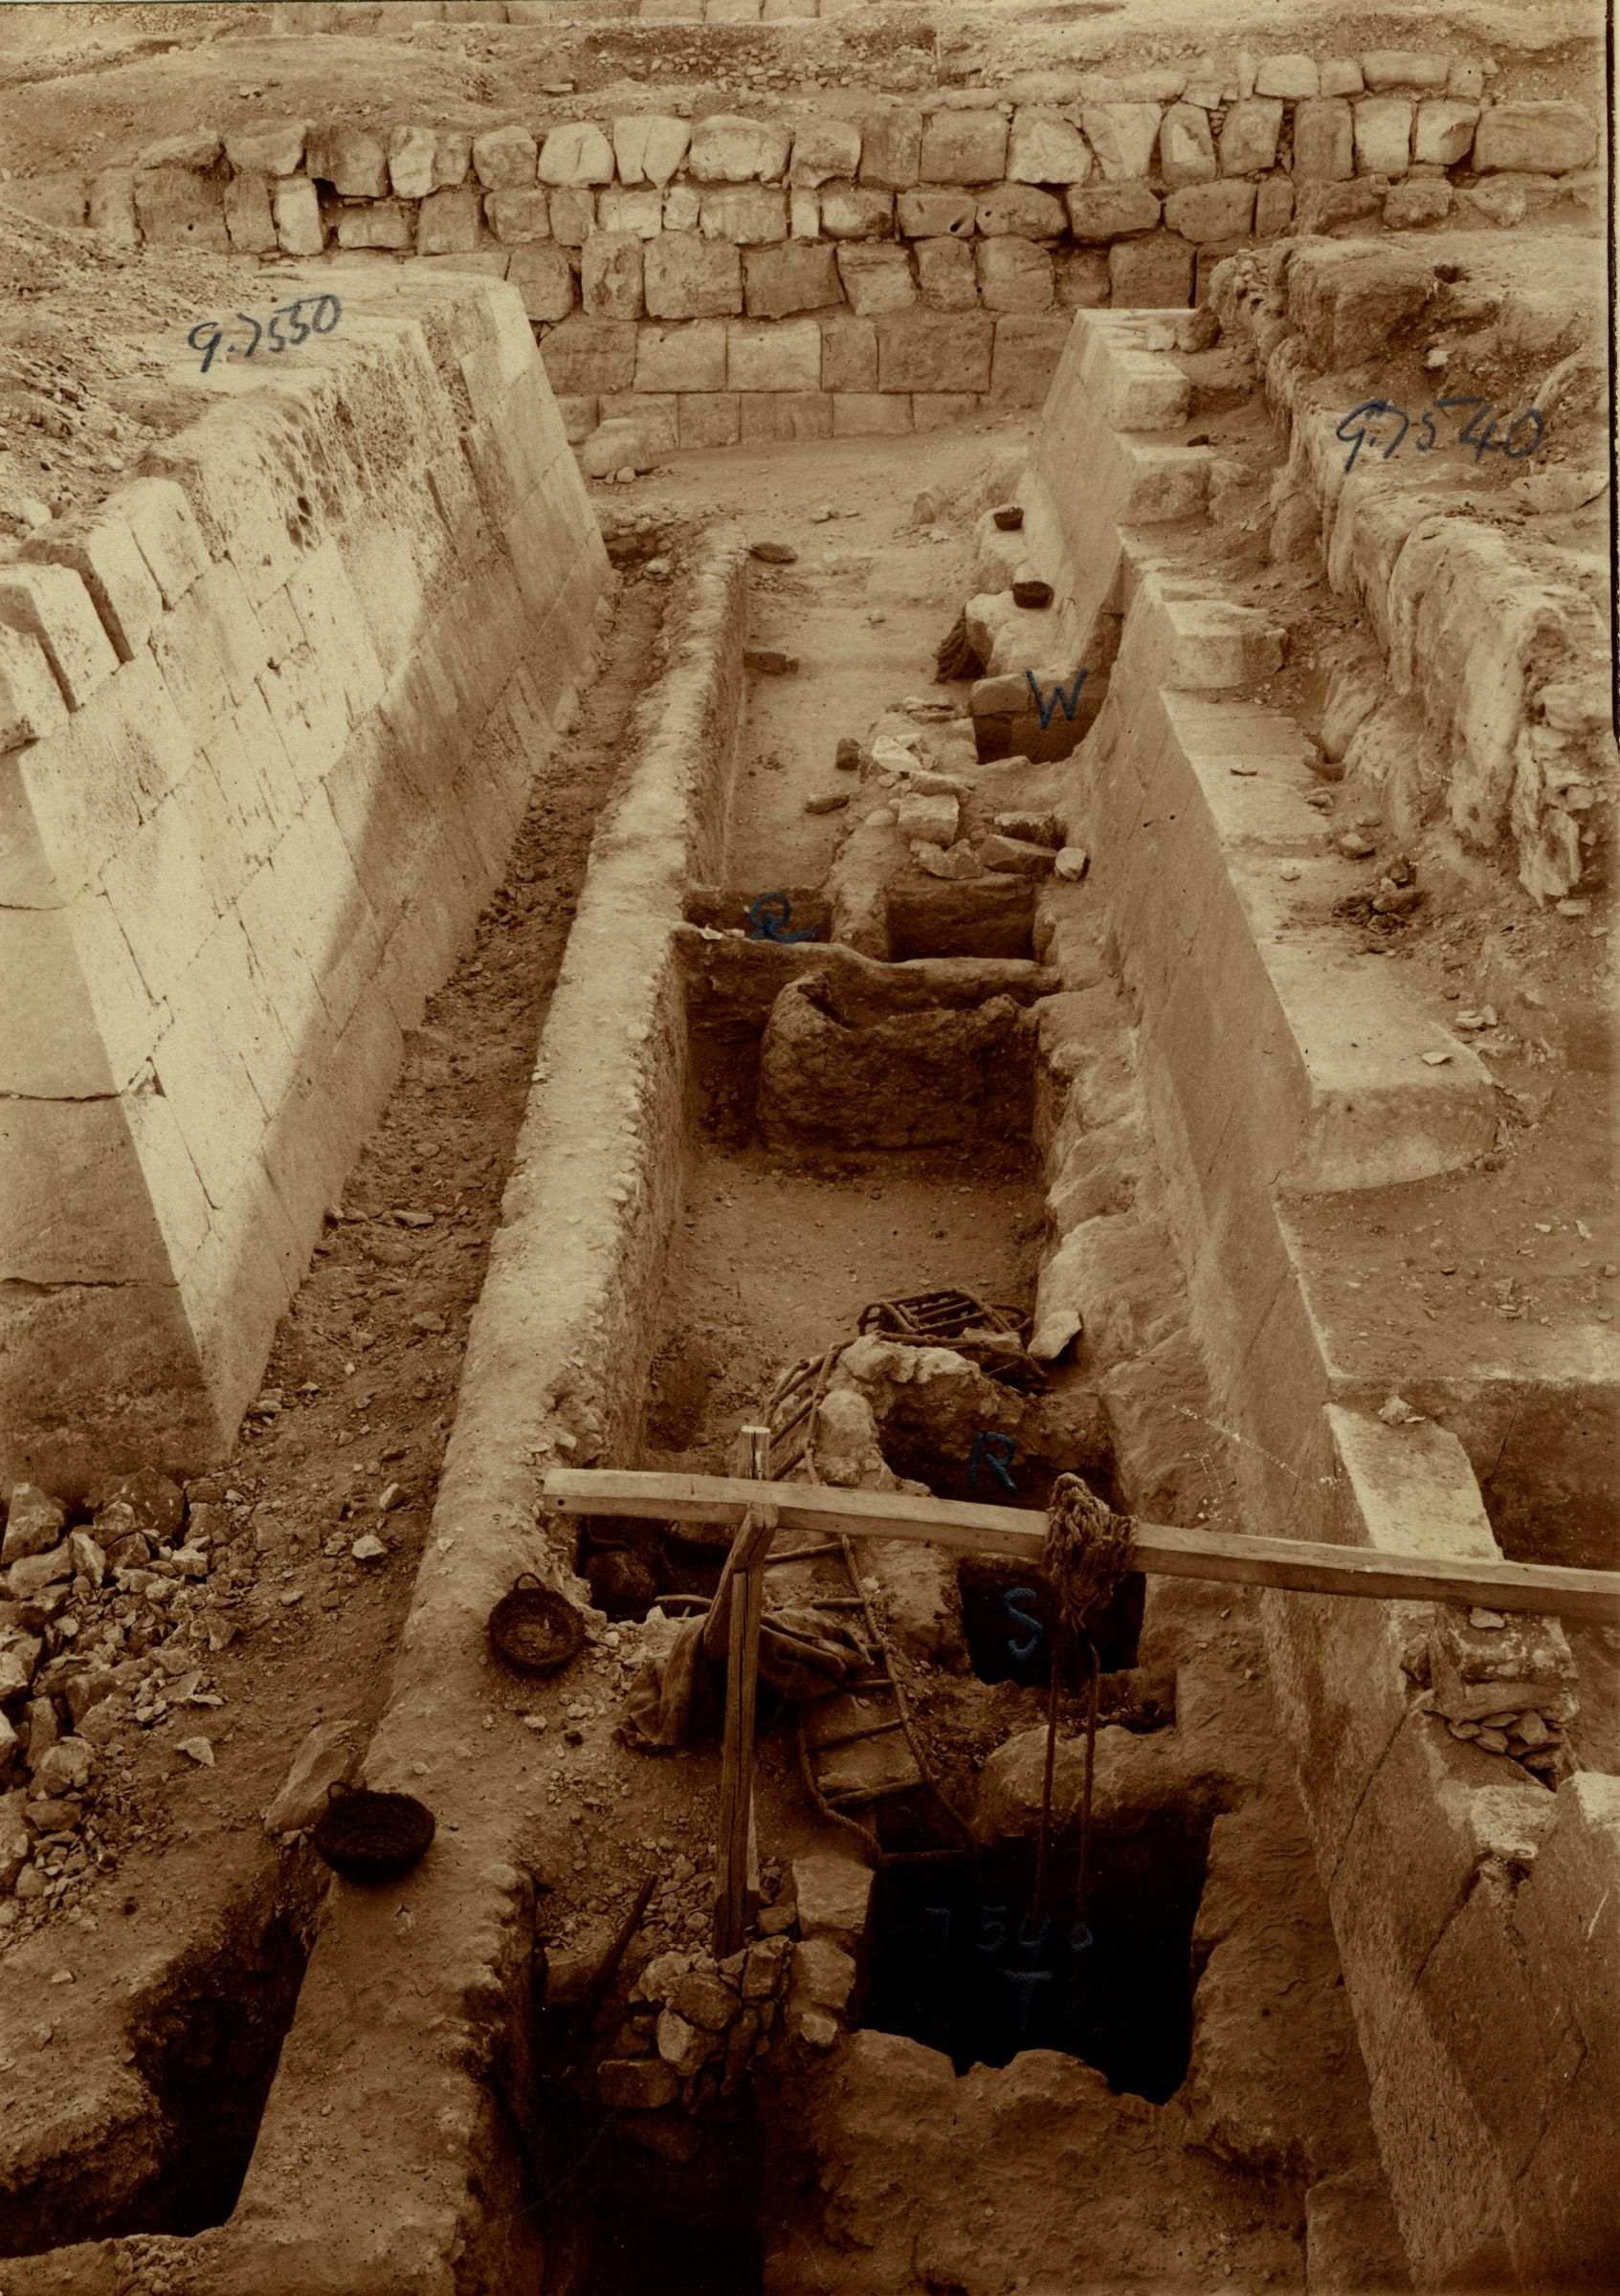 Eastern Cemetery: Site: Giza; View: G 7530-7540, G 7550